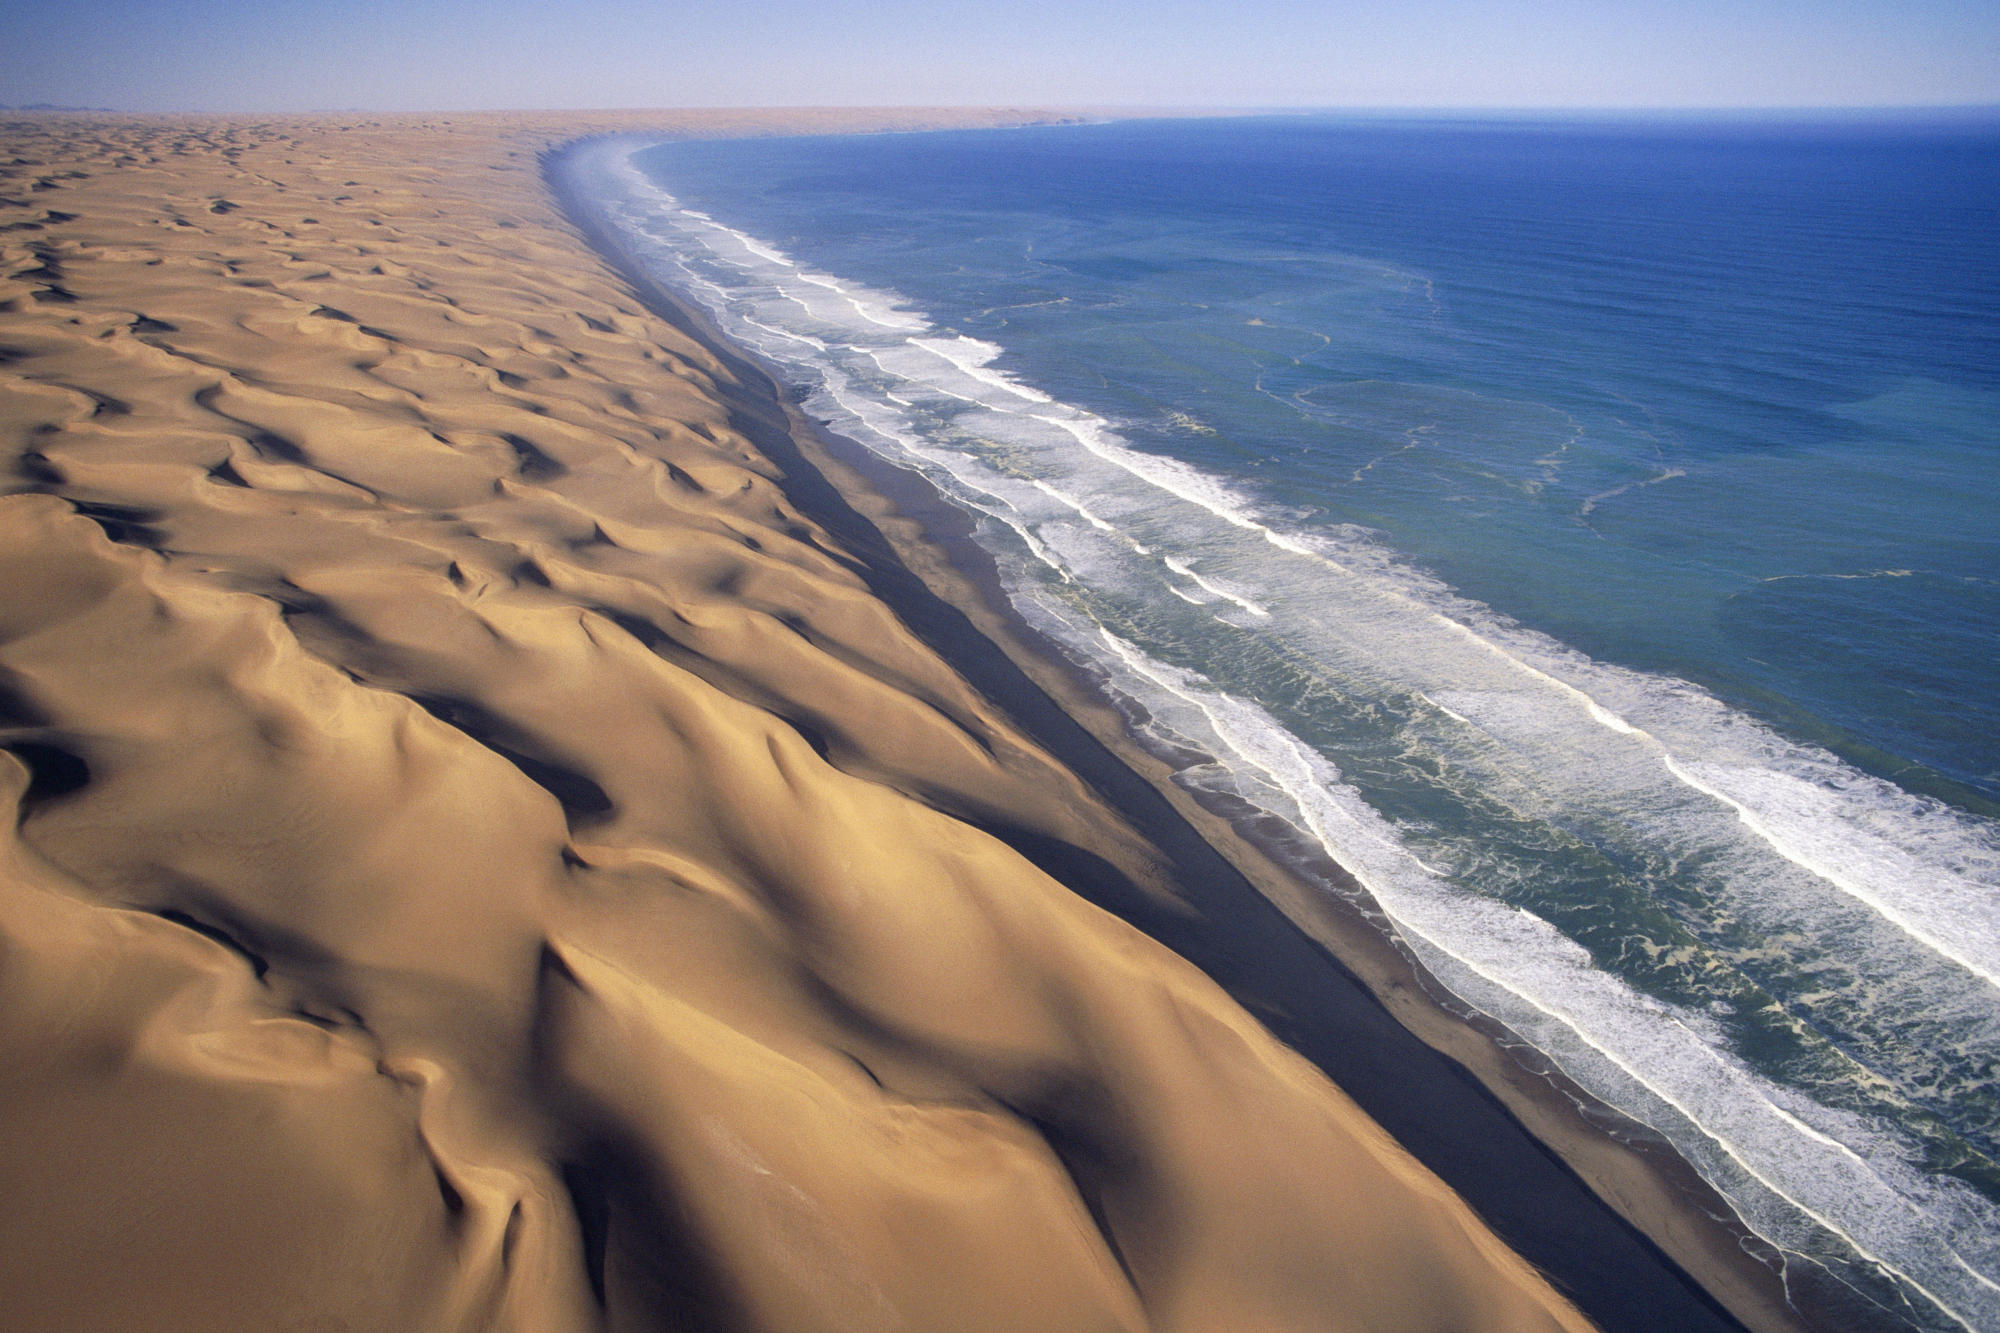 Namib Desert In Africa on Landforms Of The Earth